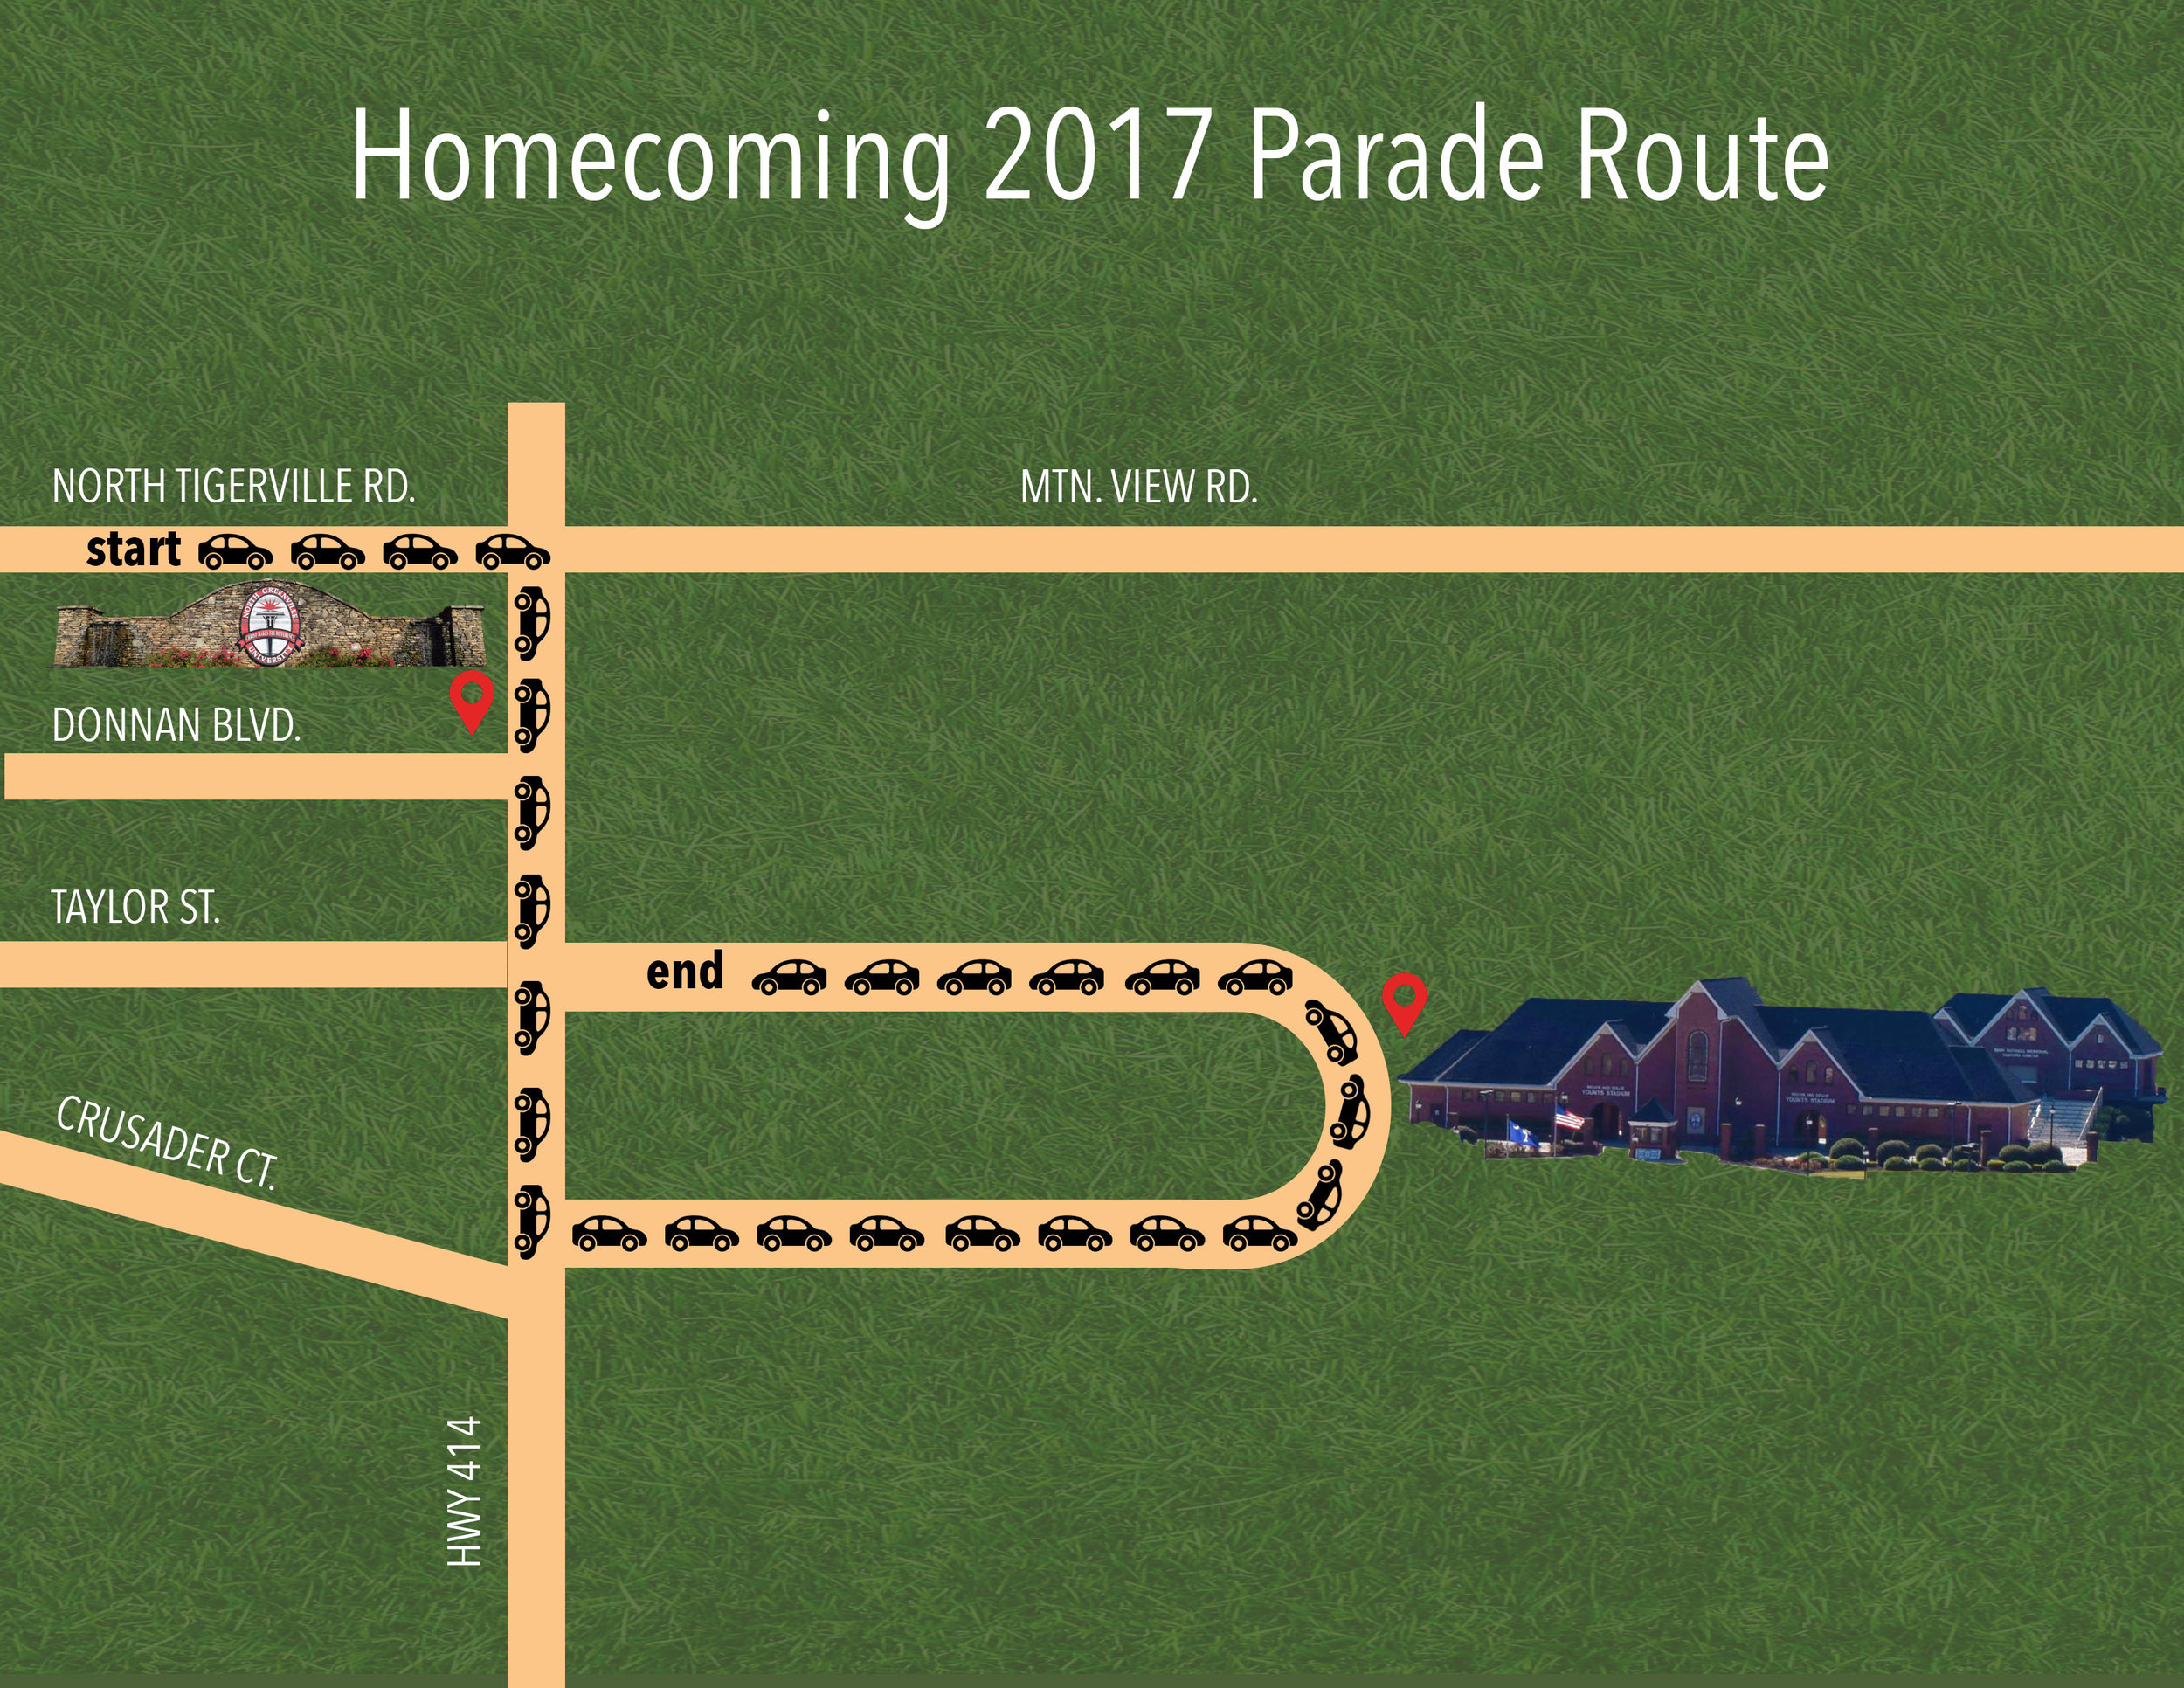 homecoming route.jpg